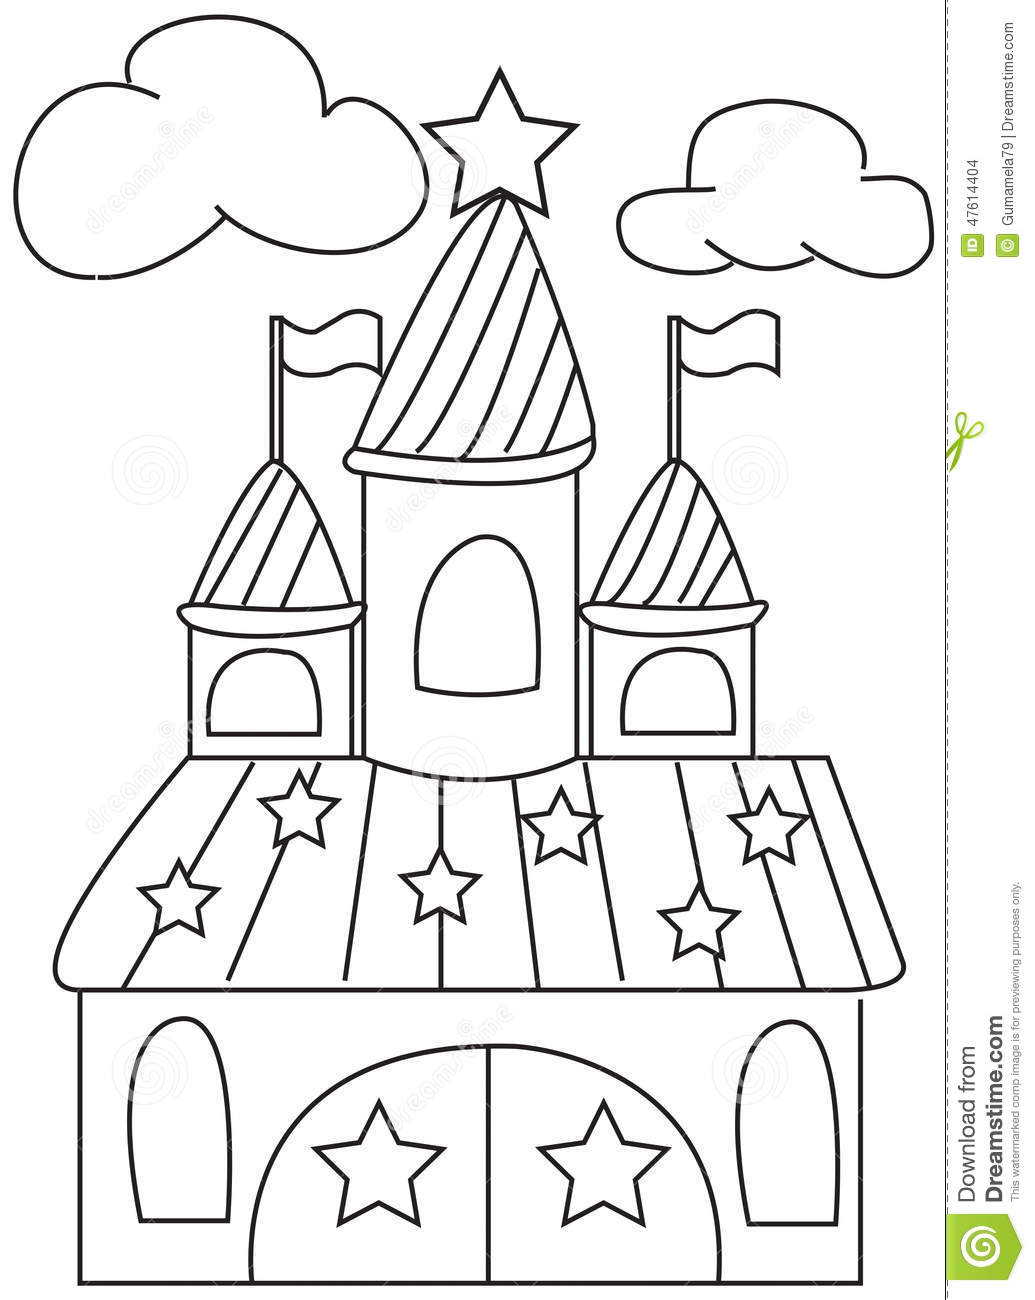 Hand Drawn Coloring Page Of A Star Castle Stock